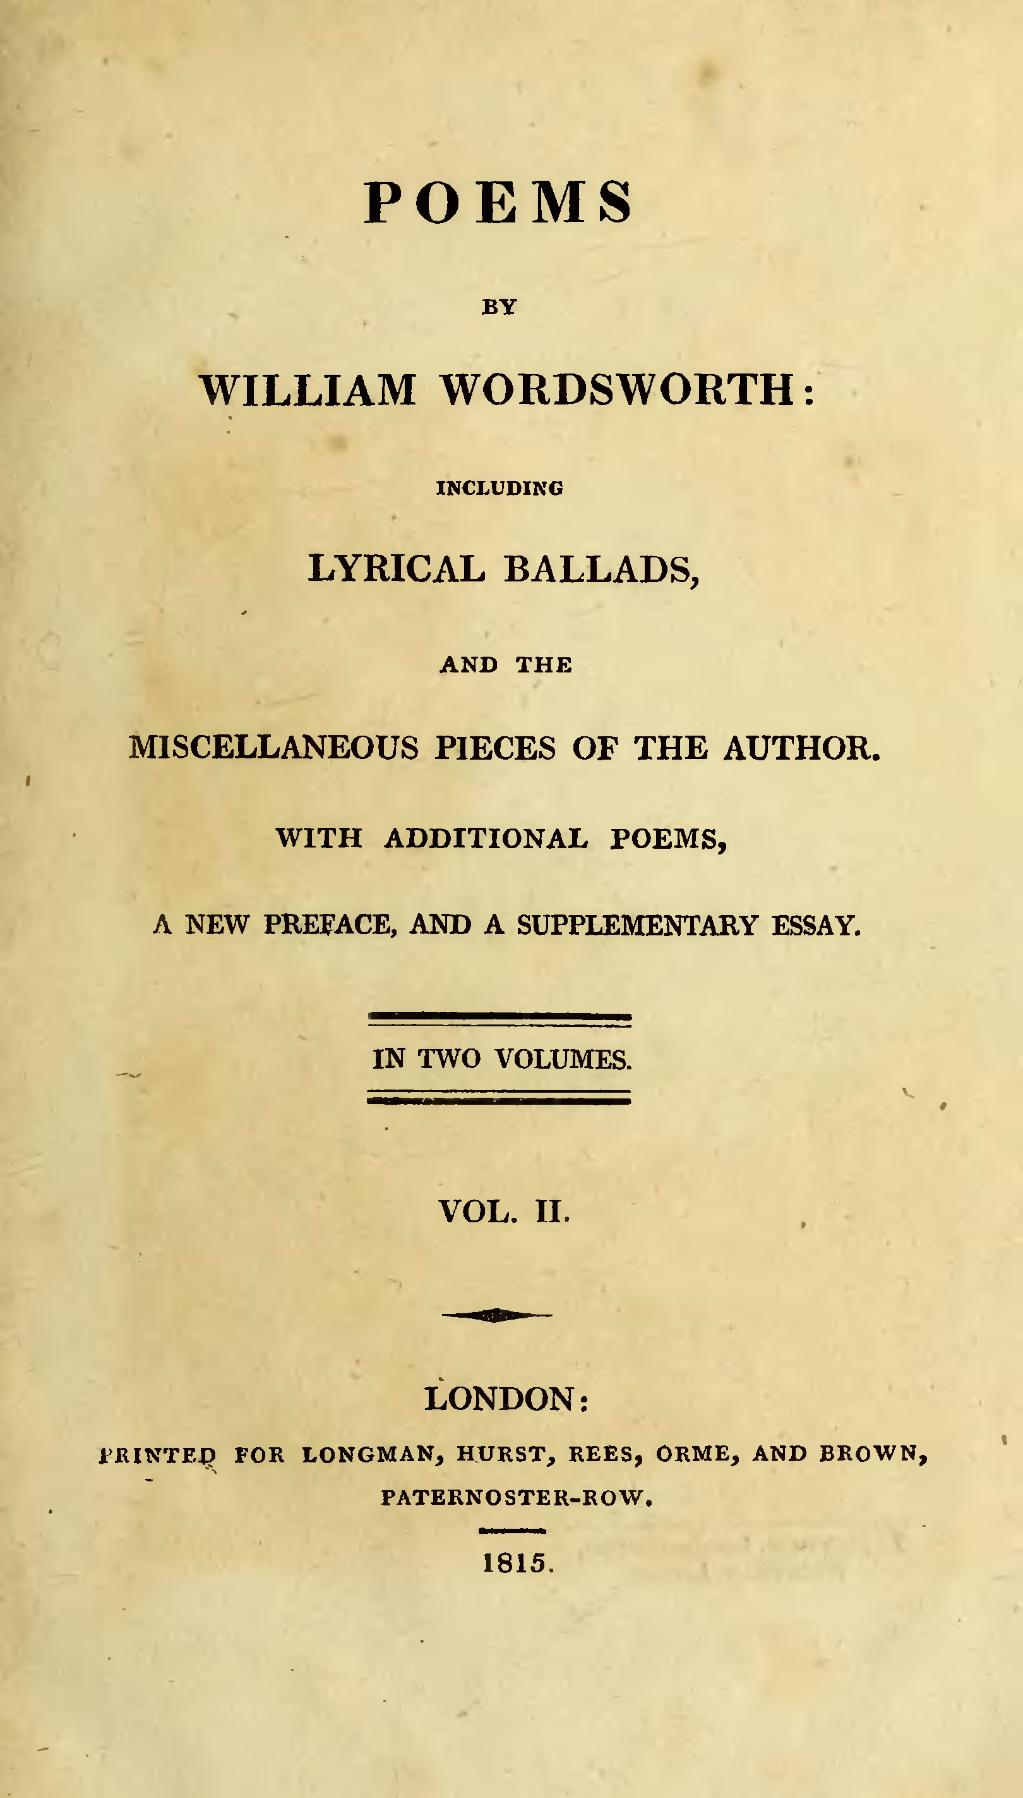 page poems by william wordsworth 1815 volume 2 djvu 7 page poems by william wordsworth 1815 volume 2 djvu 7 wikisource the online library